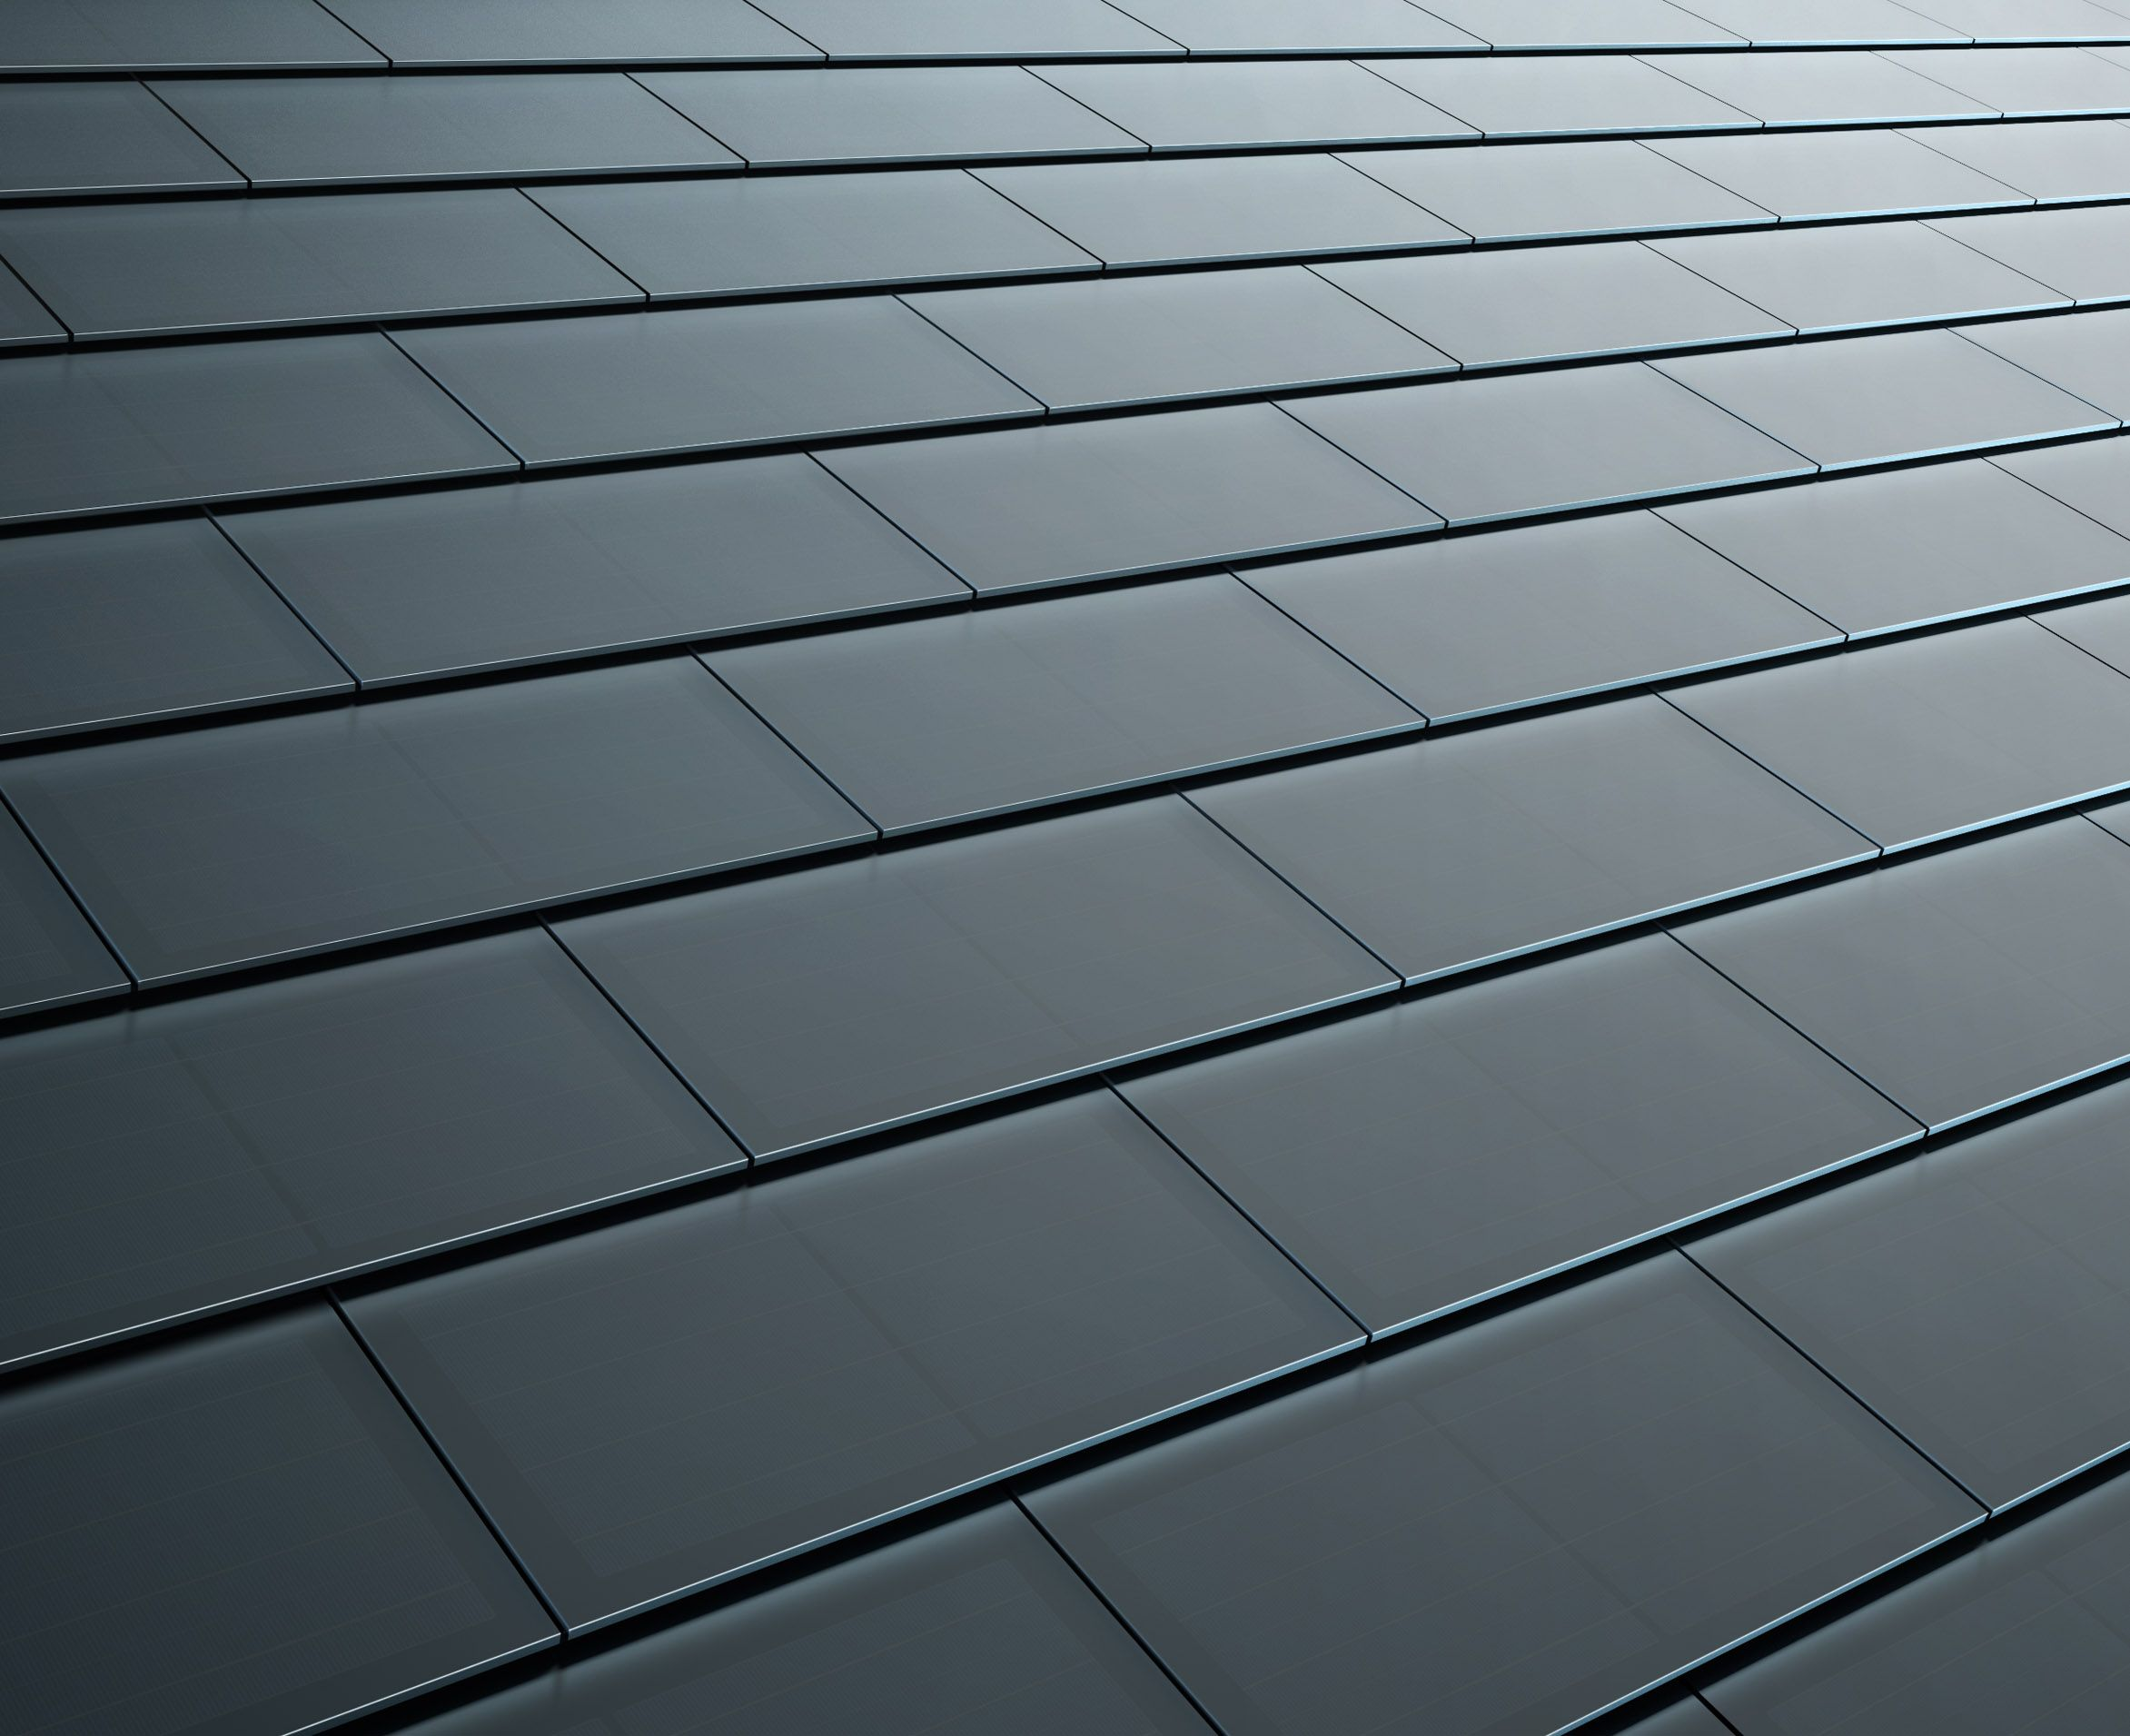 What You Should Know Before Buying Tesla's Solar Roof Tiles